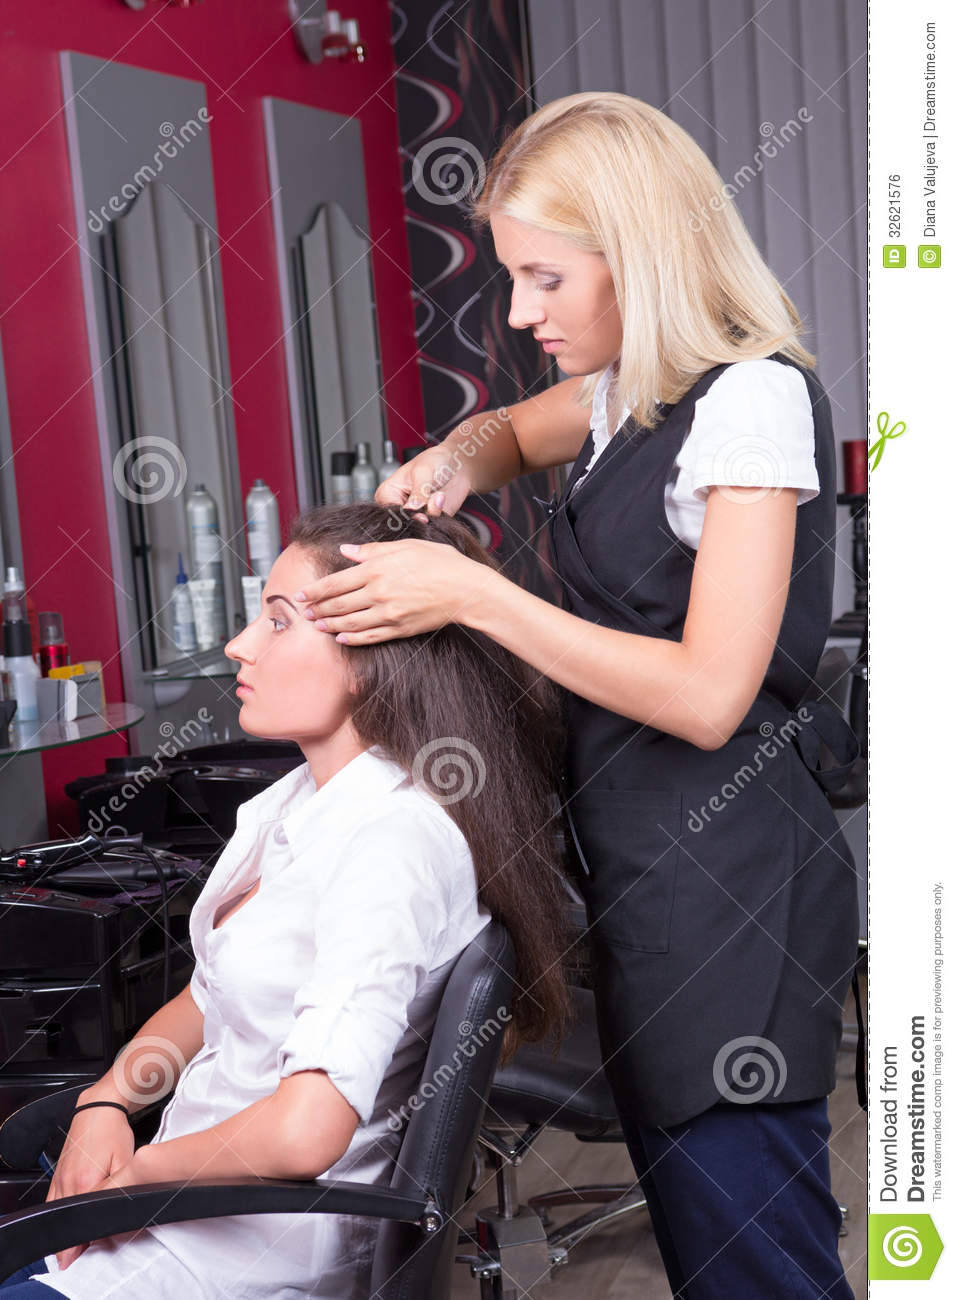 chair design for elderly beach towels with pocket lounge portrait of professional hairdresser at work in beauty salon royalty free stock image - ...